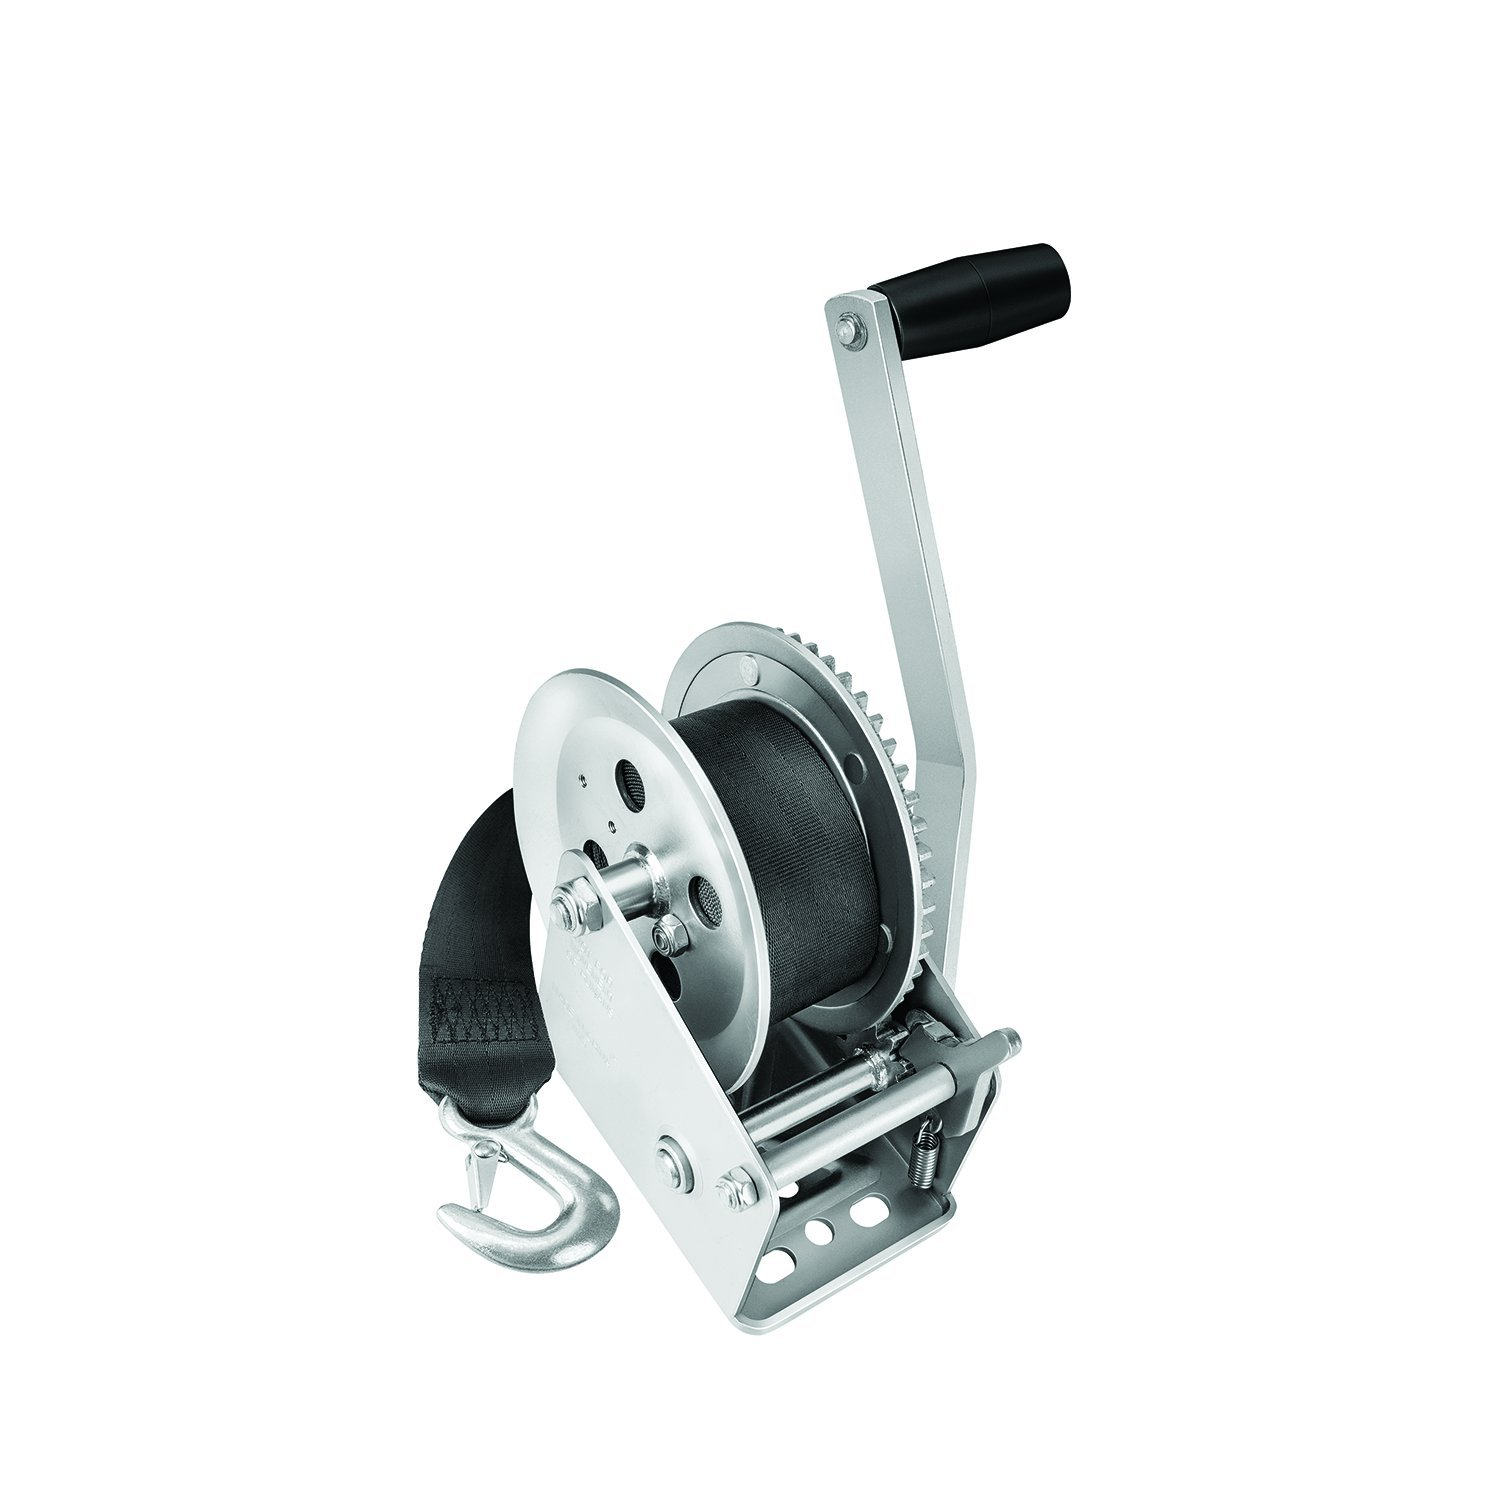 Fulton 142305 Single Speed Winch with 20' Strap - 1800 lbs. Capacity, 1 Pack